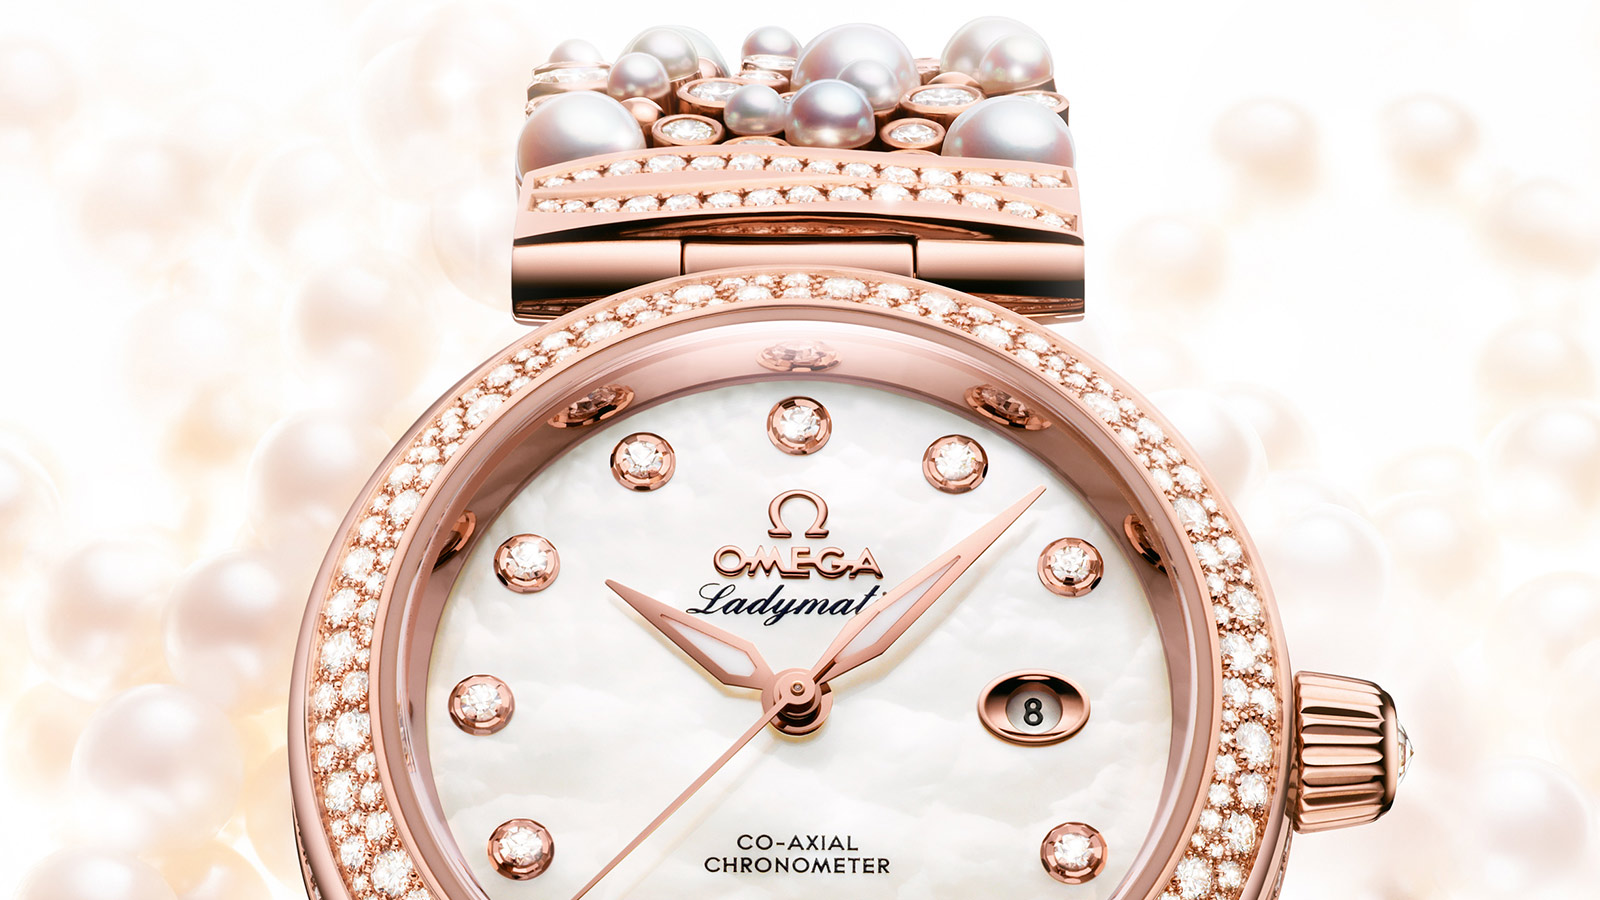 De Ville レディマティック Ladymatic Omega Co‑Axial 34 mm - 425.65.34.20.55.008 - ビュー 1